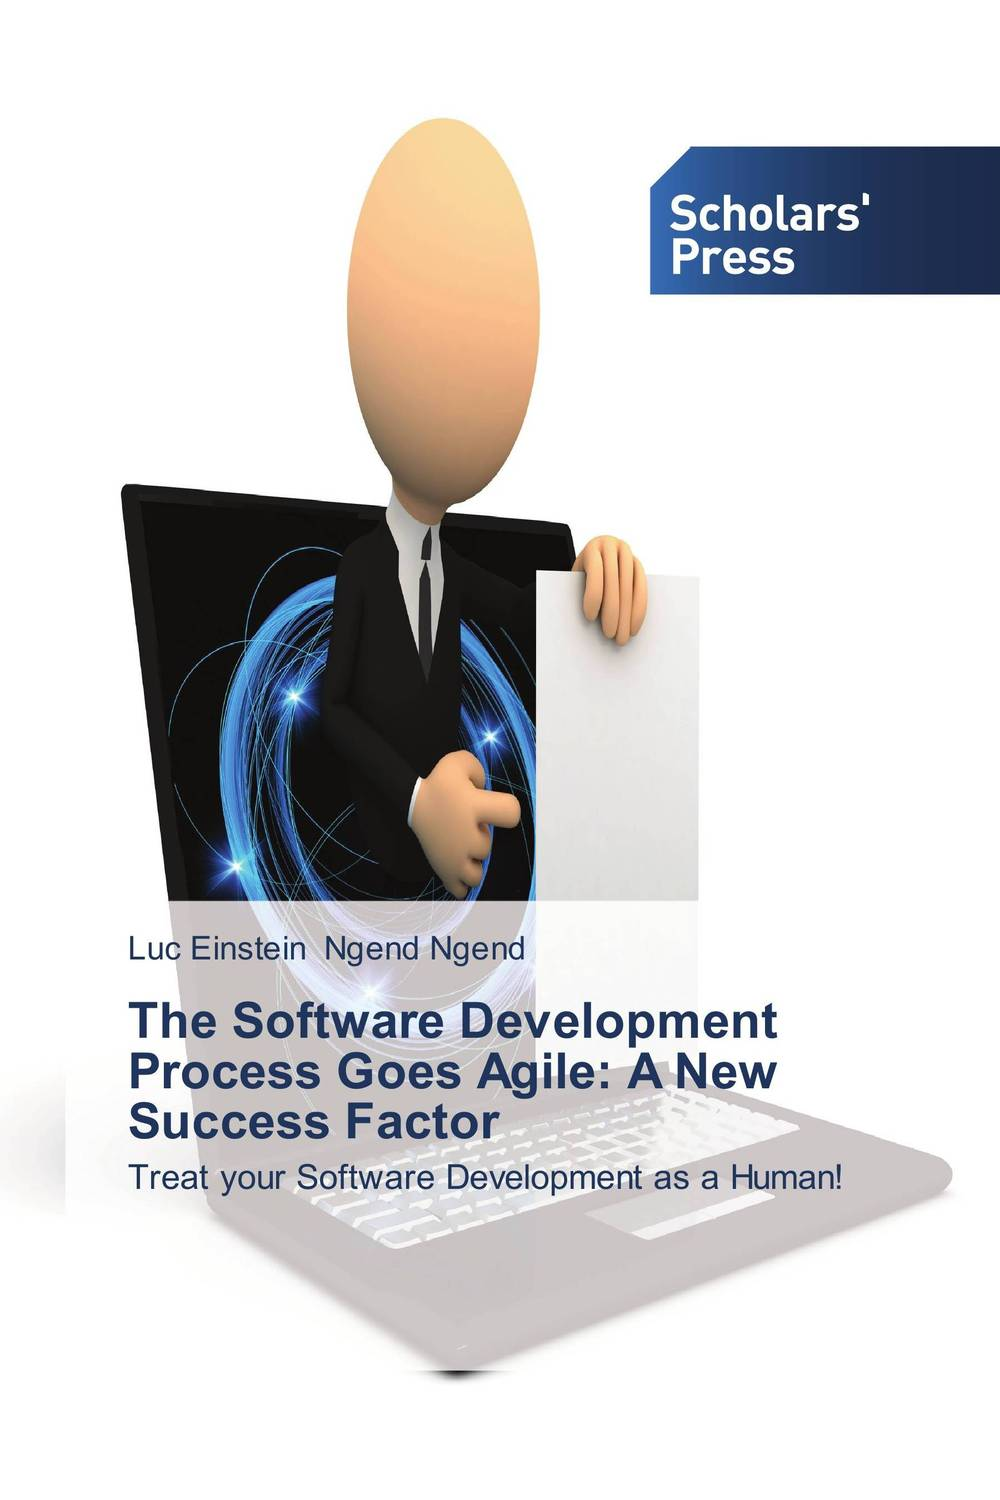 The Software Development Process Goes Agile: A New Success Factor swiftack a new agile development approach